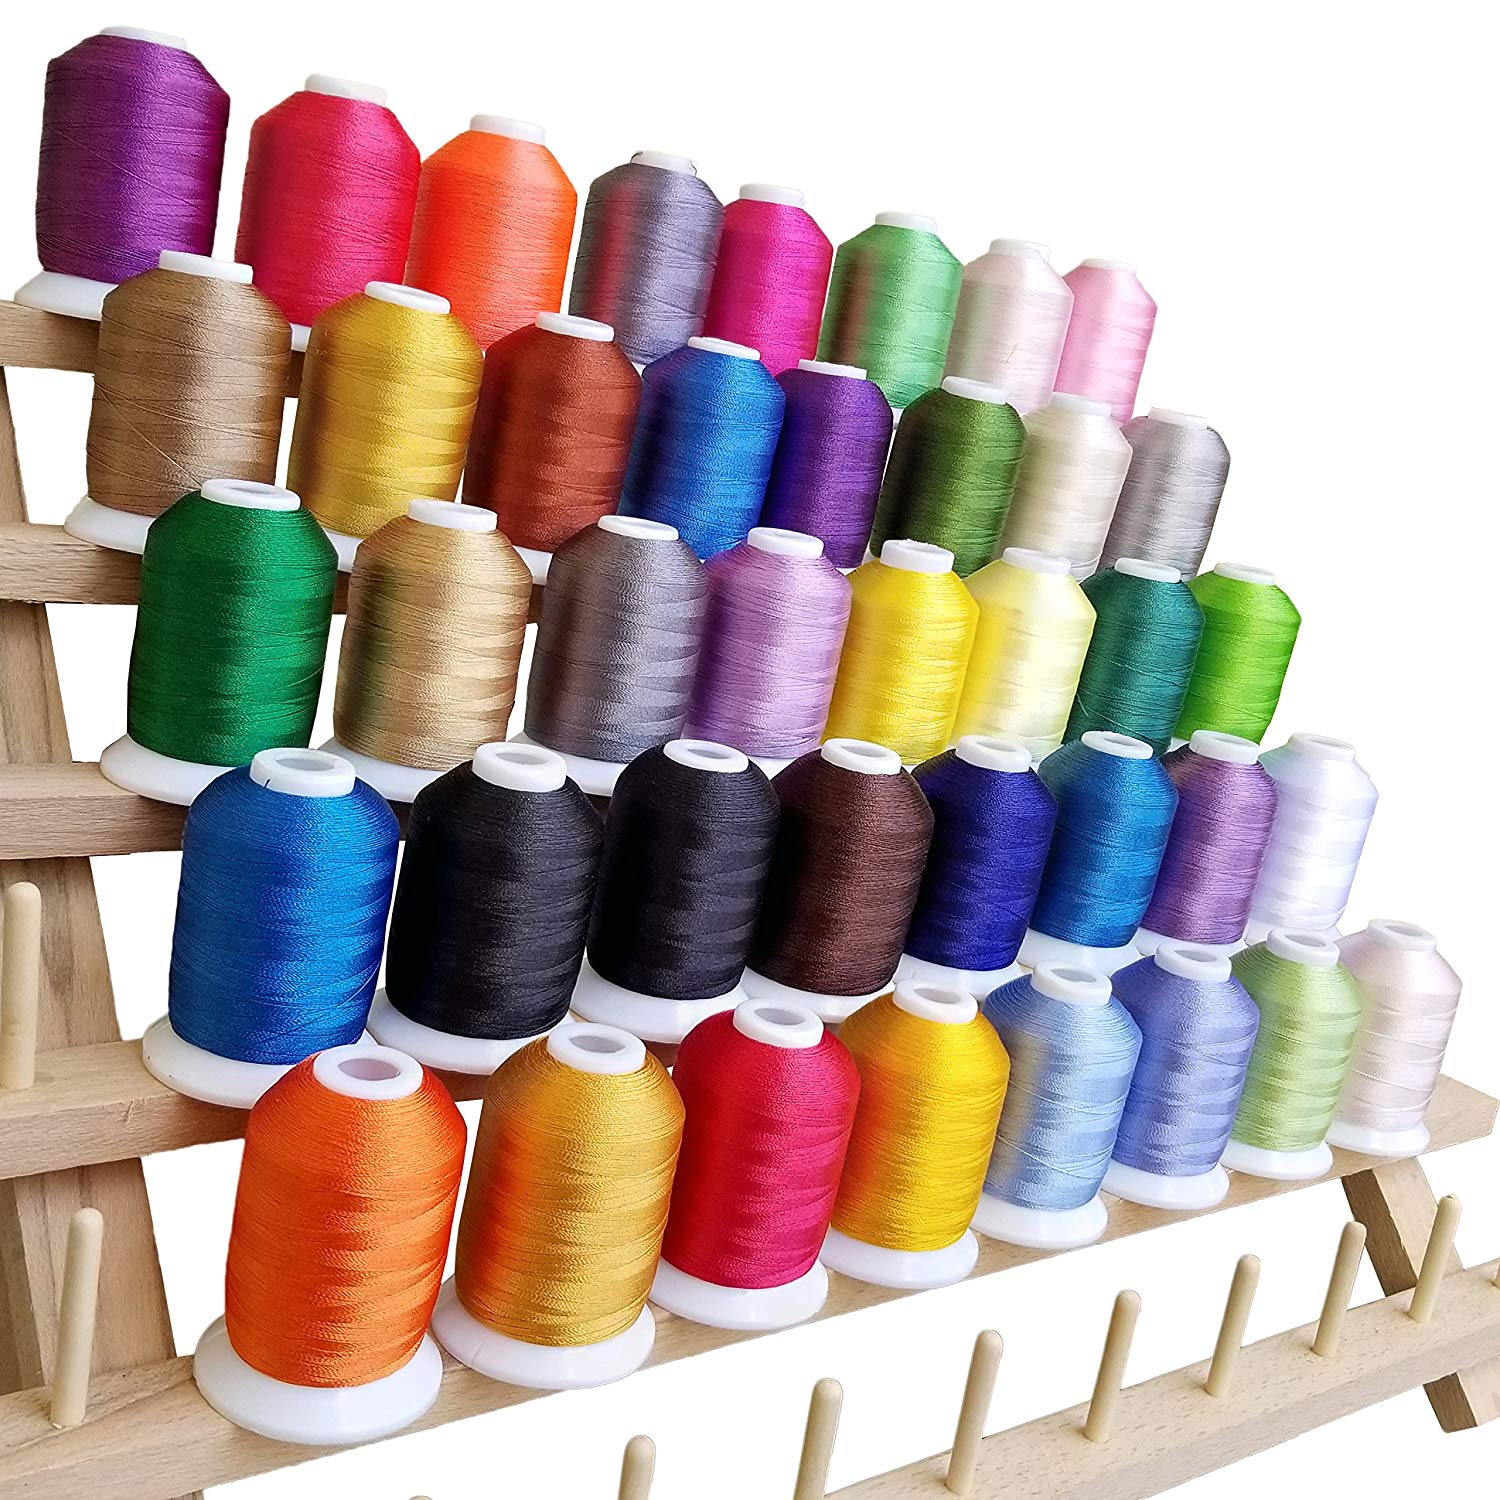 Embroidery Thread - 40 Variety Polyester Spools, Beautiful Colors Perfectly Match Brother/Singer Machines, 550 Yard/ Spool, + 2 Free Bonus - Walmart.com